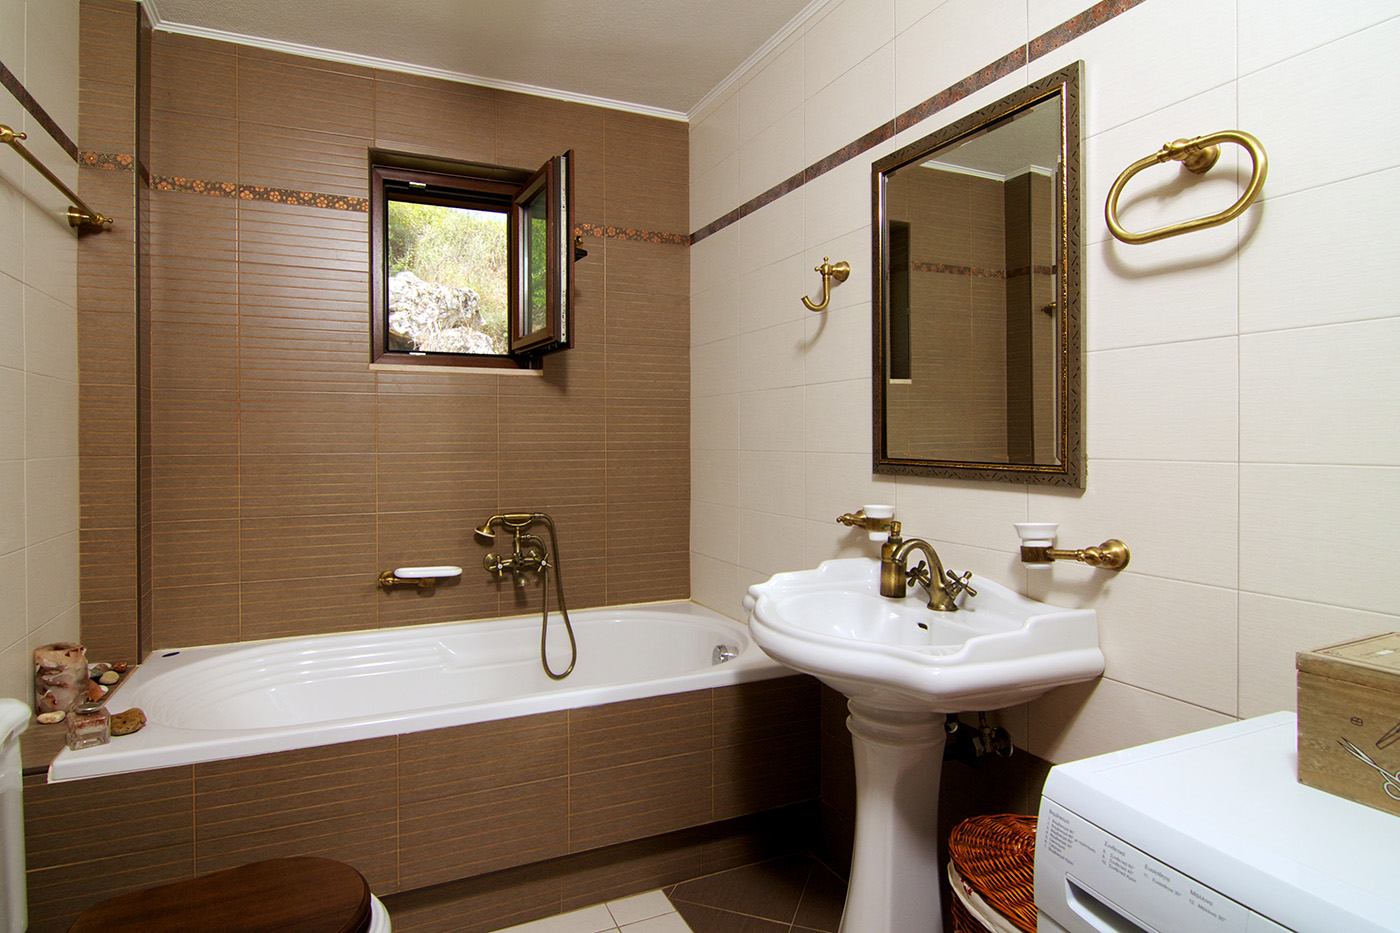 Rooms - Main Bathroom